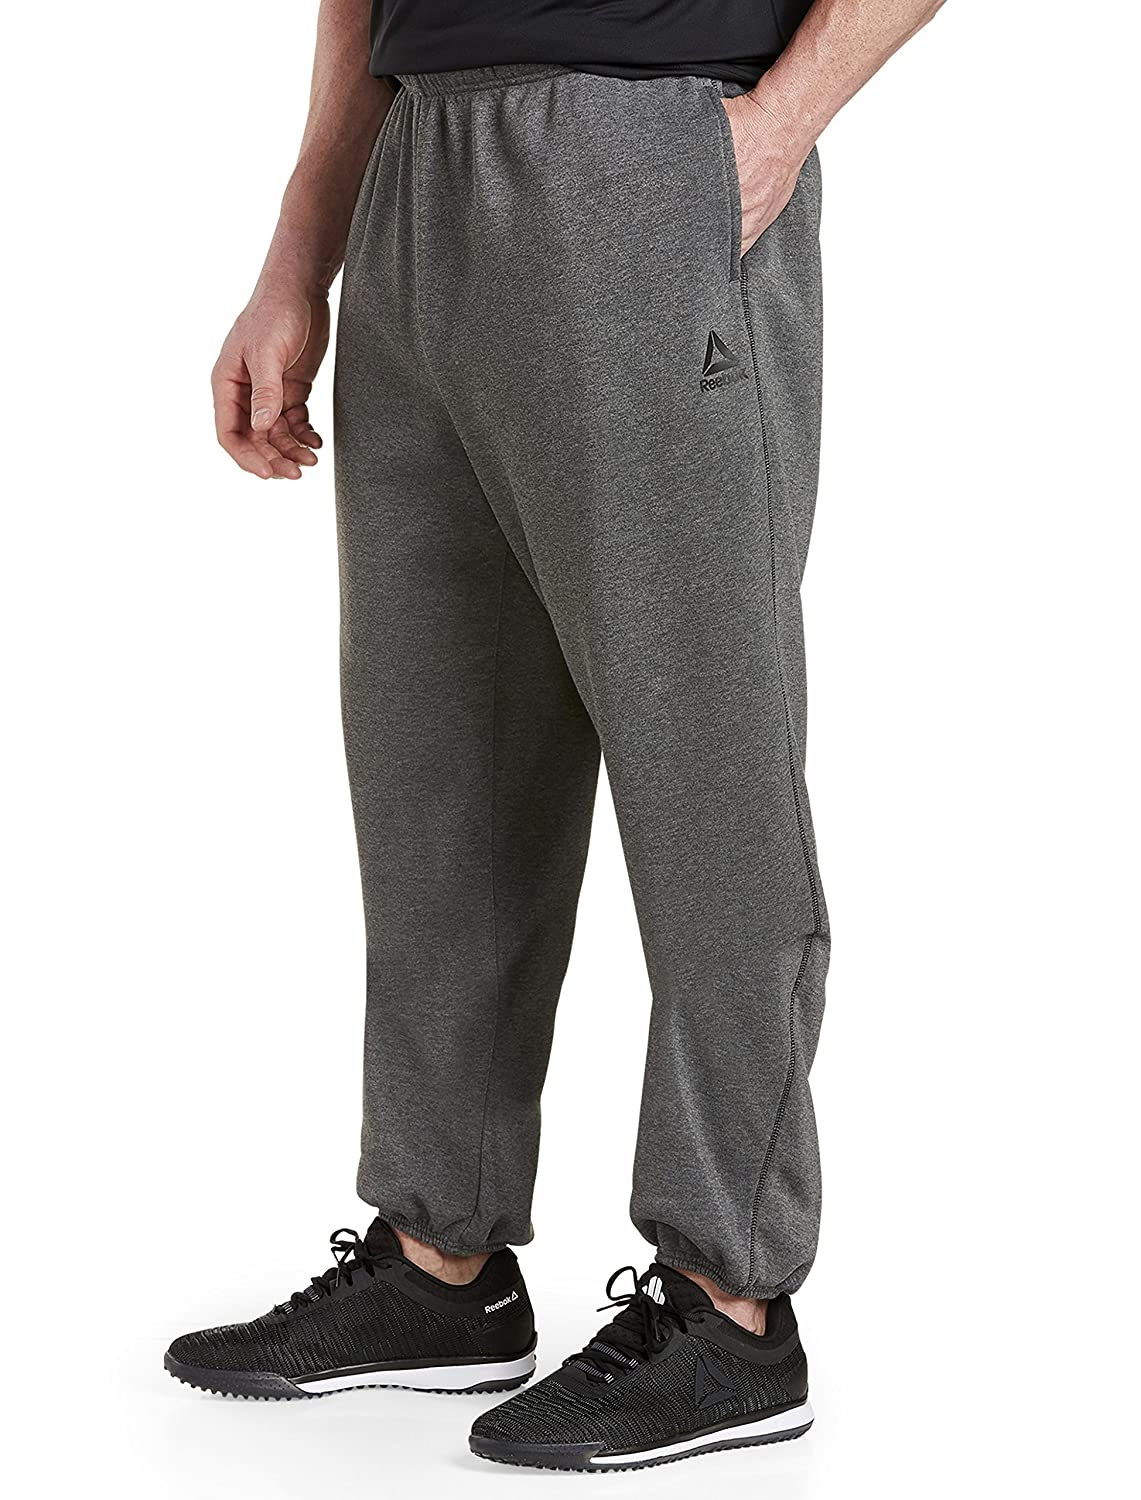 Reebok Big and Tall Play Dry Fleece Pants